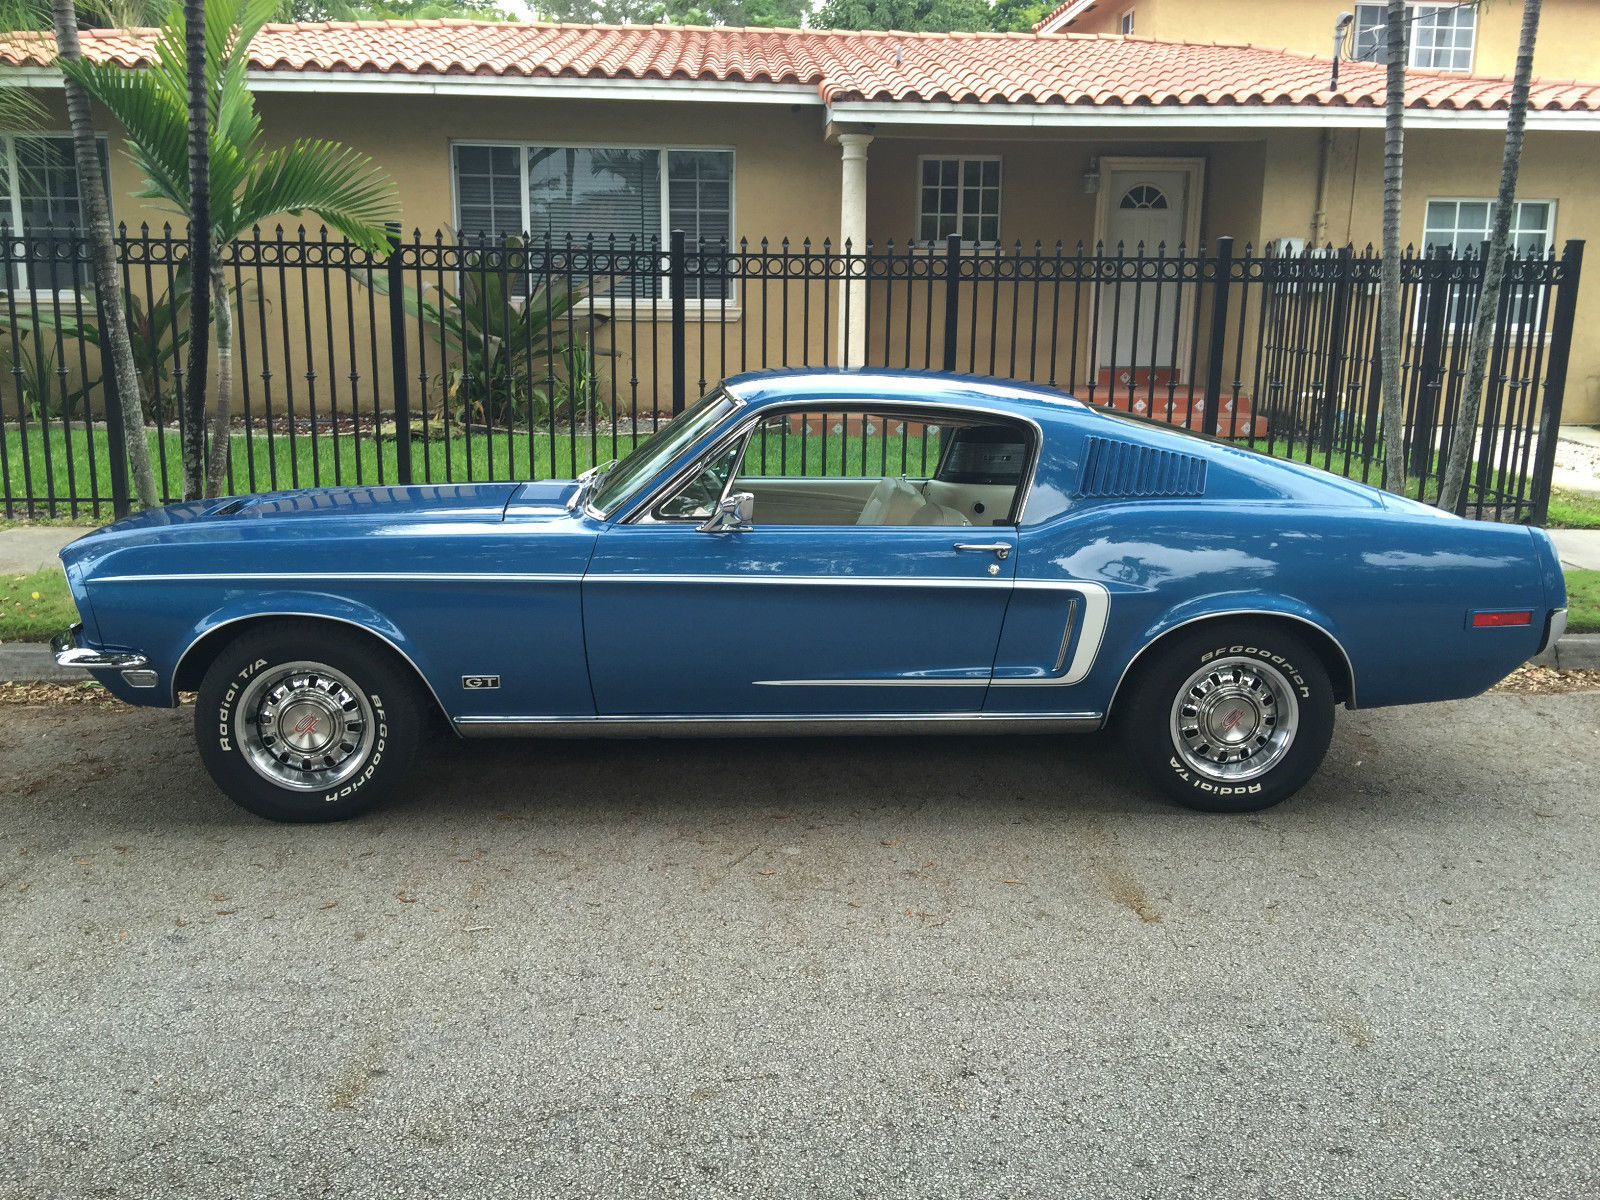 1968 Ford Mustang GT Fastback S code 390, with Matching ...